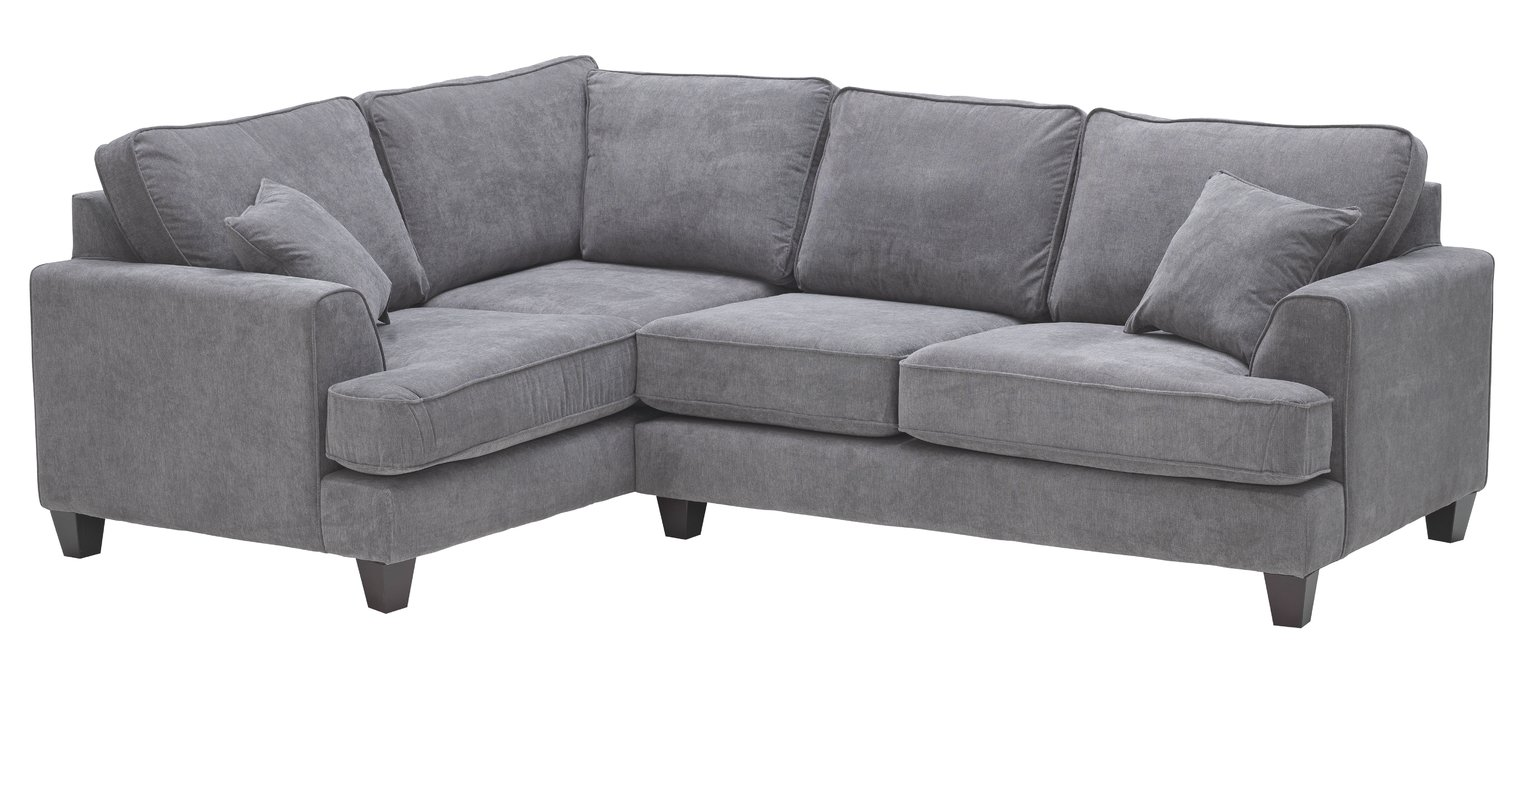 Heart of House Hampstead Fabric Left Corner Sofa - Pewter + Black Legs